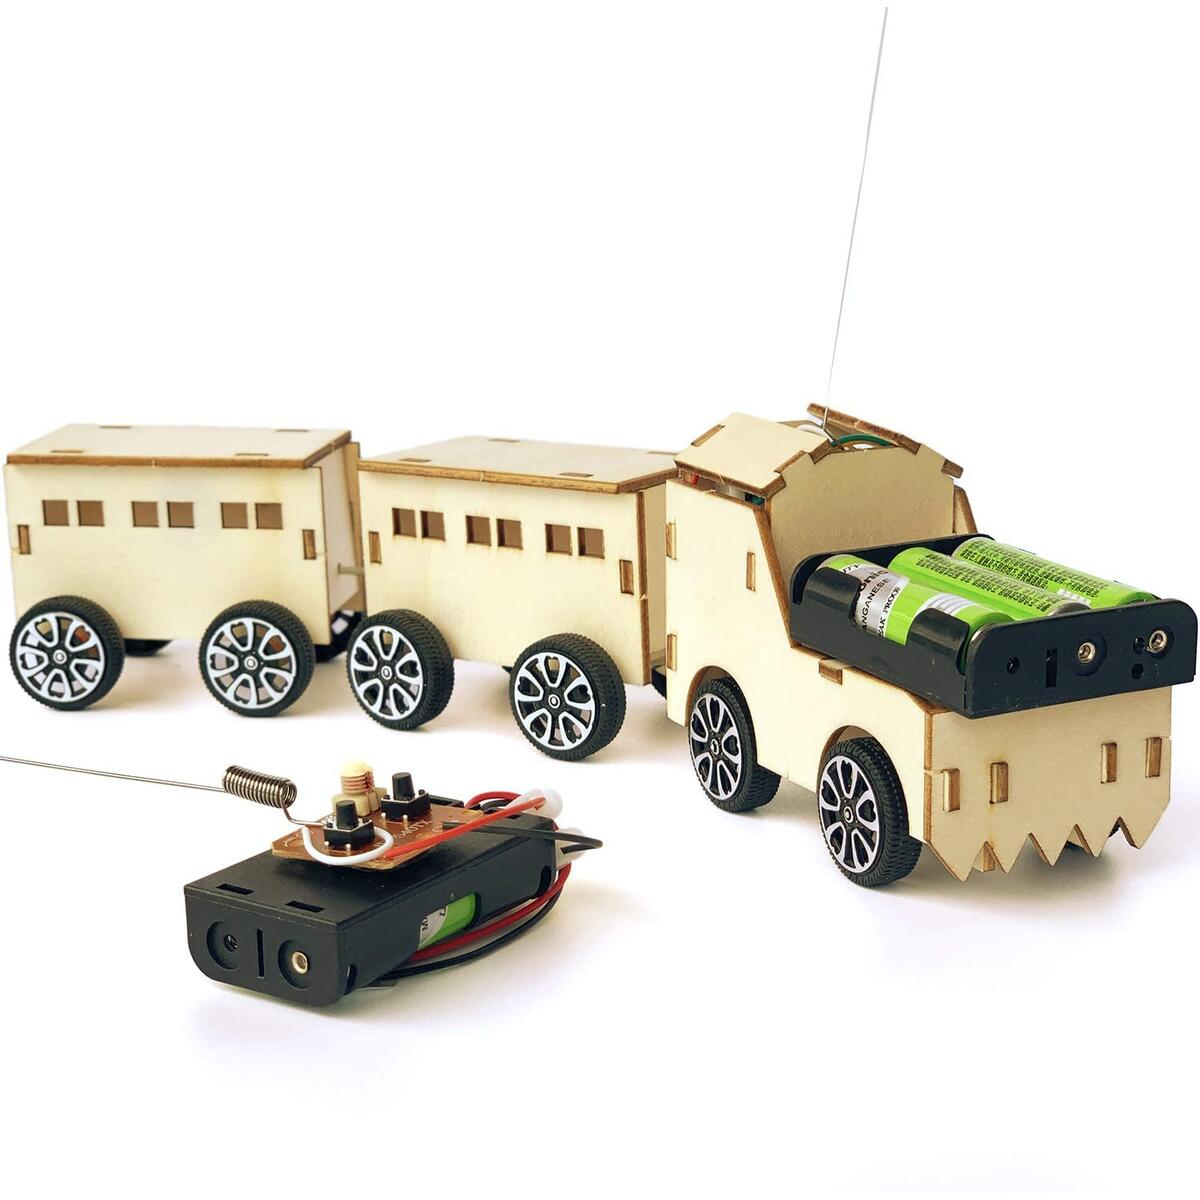 Pica Toys Wooden Wireless Remote Control Small Train Robotics Creative Engineering Circuit Science Stem Building Kit - Electric Motor DIY Experiment for Kids, Teens and Adults